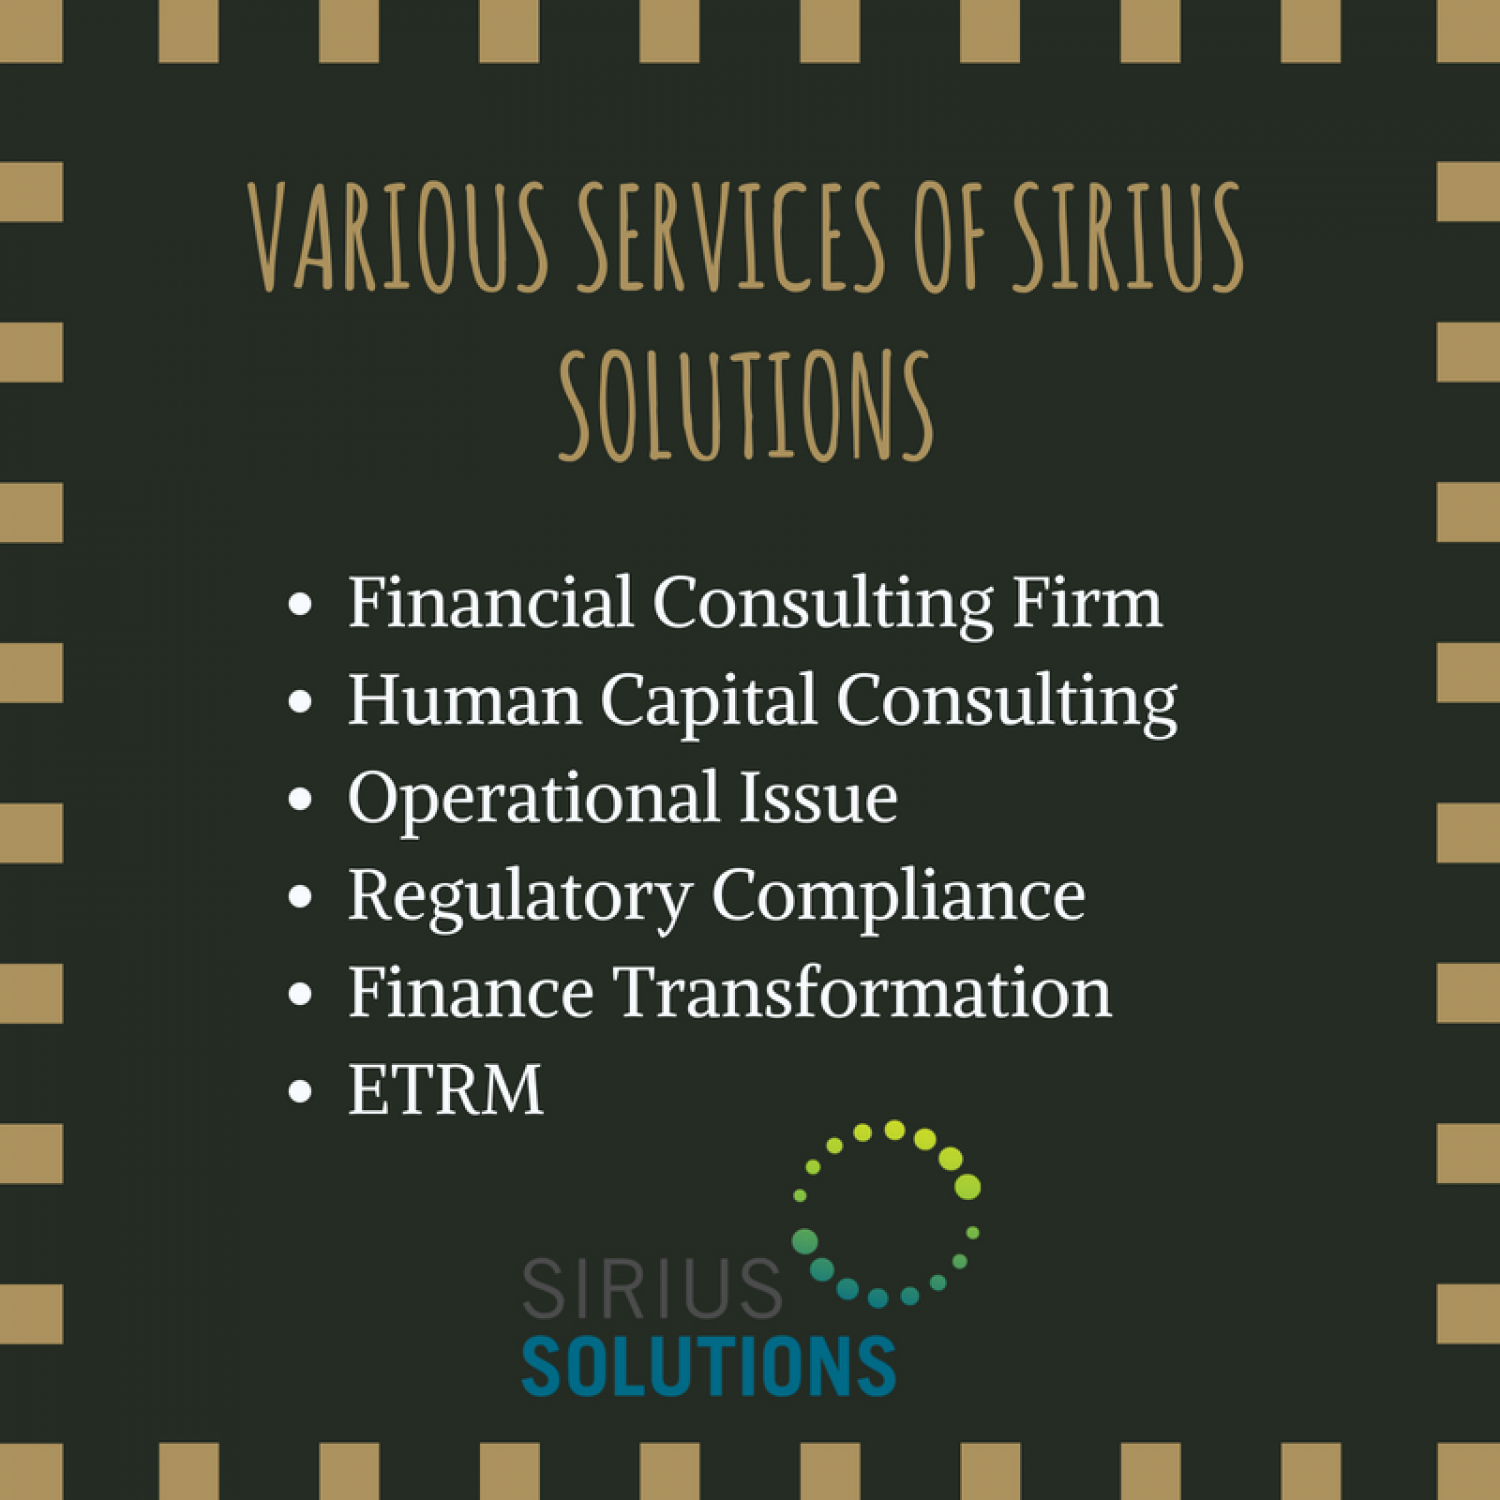 Various Services of Sirius Solutions Infographic